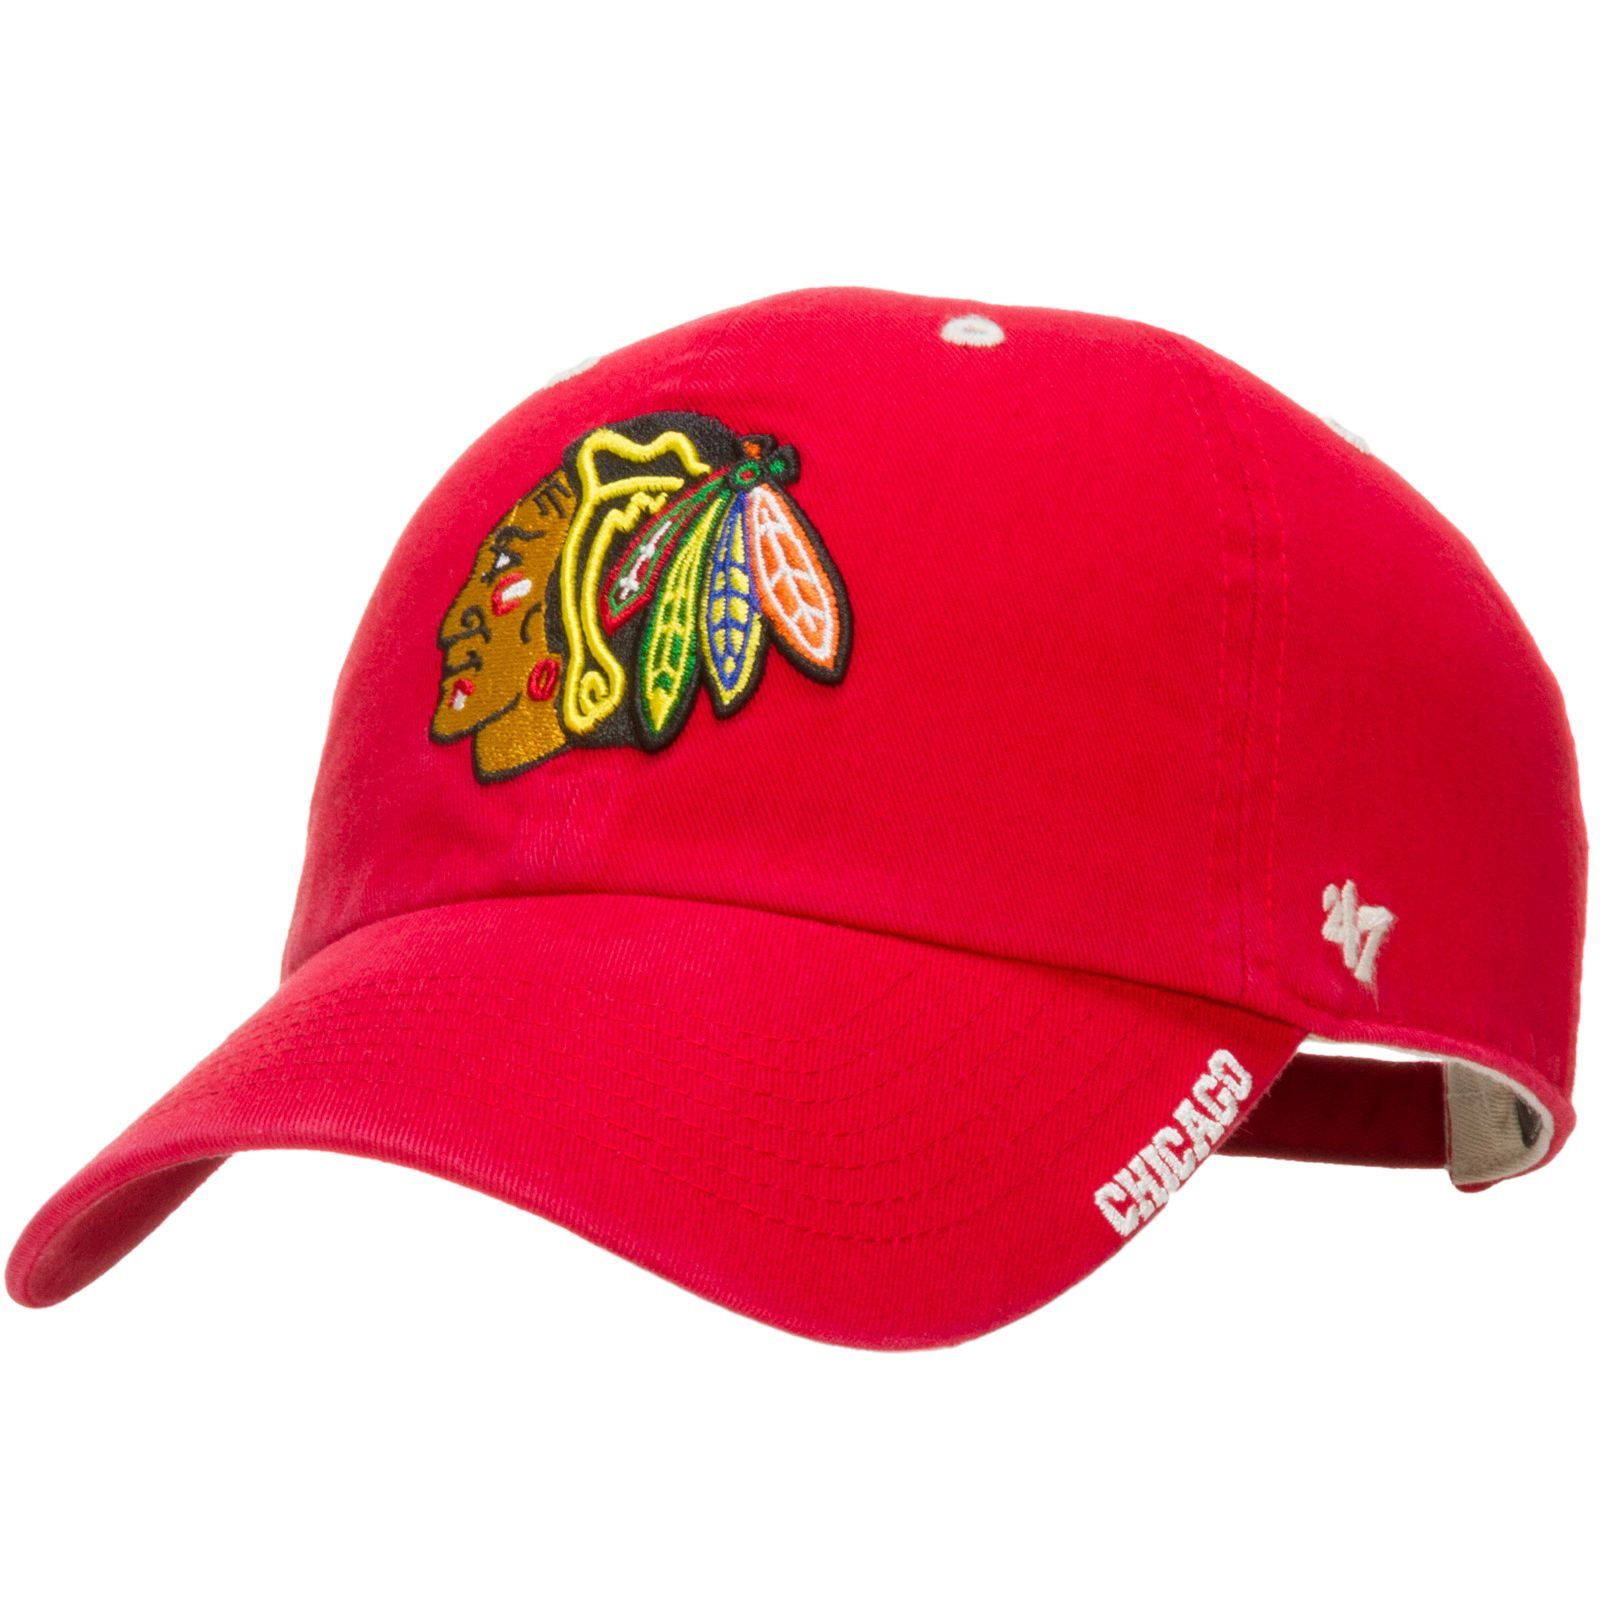 0c6d04f809fe5 Chicago Blackhawks Red Ice Indian Head Logo Clean-Up Adjustable Hat by 47  Brand  Chicago  Blackhawks  ChicagoBlackhawks